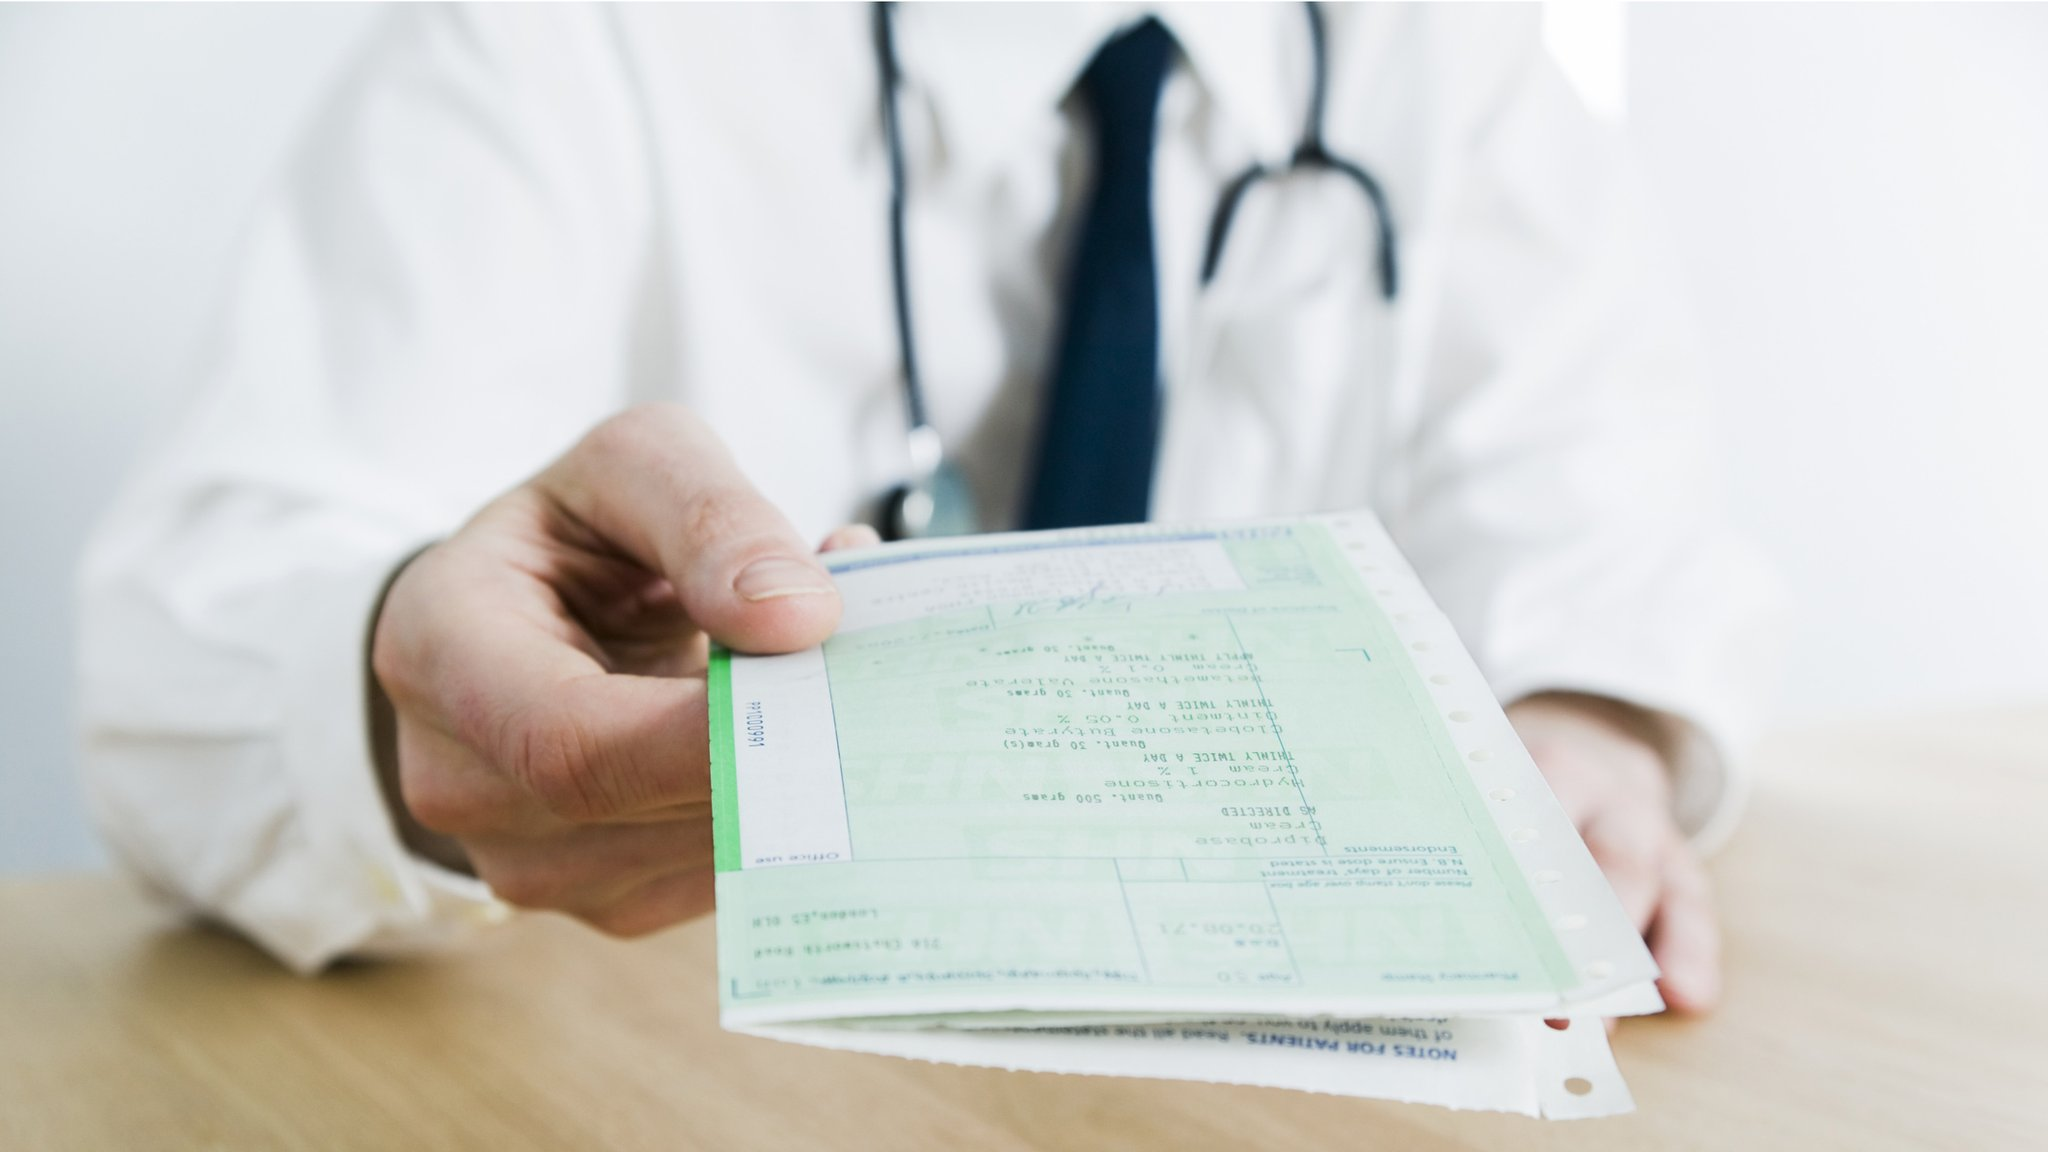 'Patients at risk' from length of GP consultations